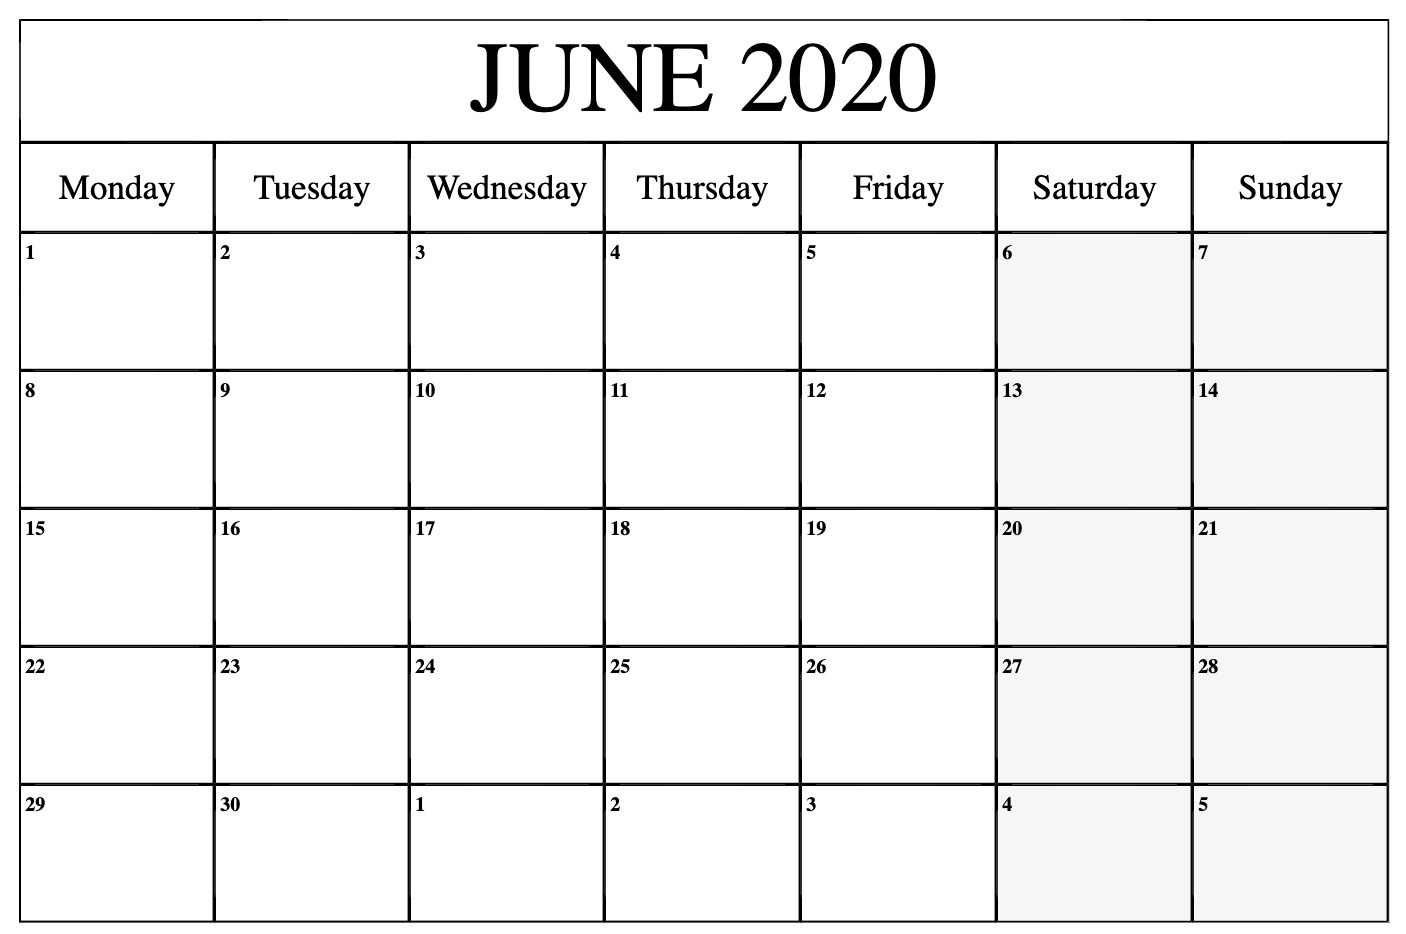 June 2020 Calendar Printable Monday